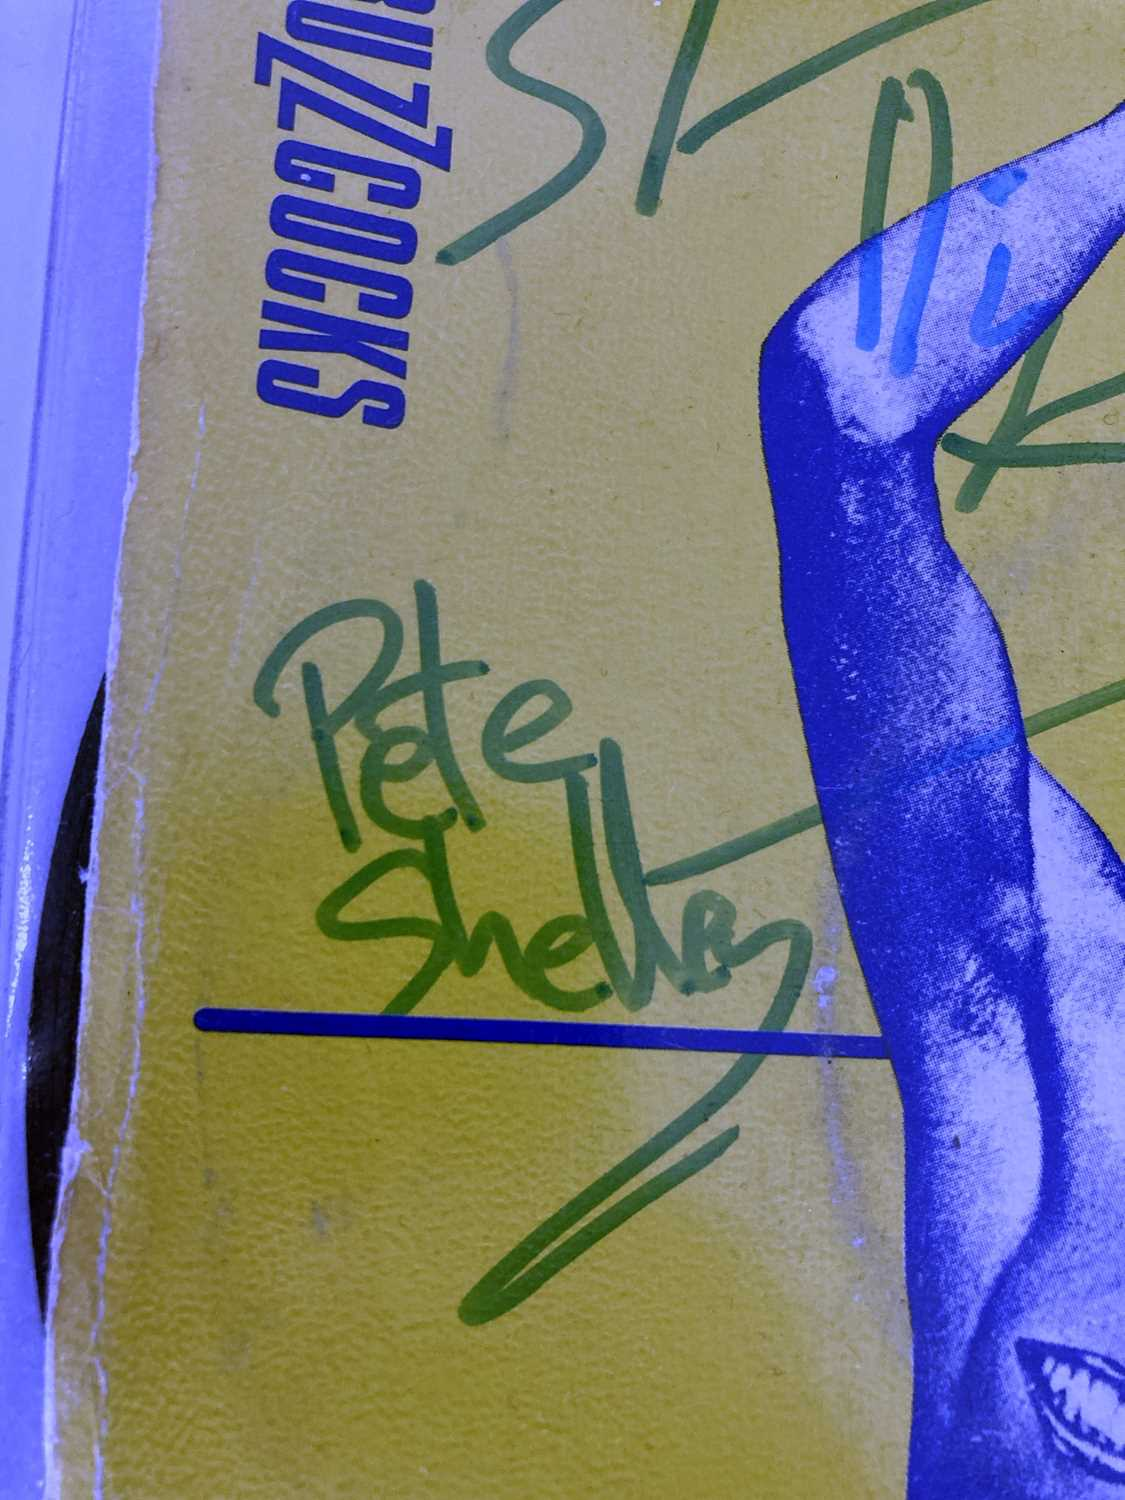 SIGNED AND RARE PUNK SINGLES - JILTED JOHN / BUZZCOCKS - Image 5 of 6